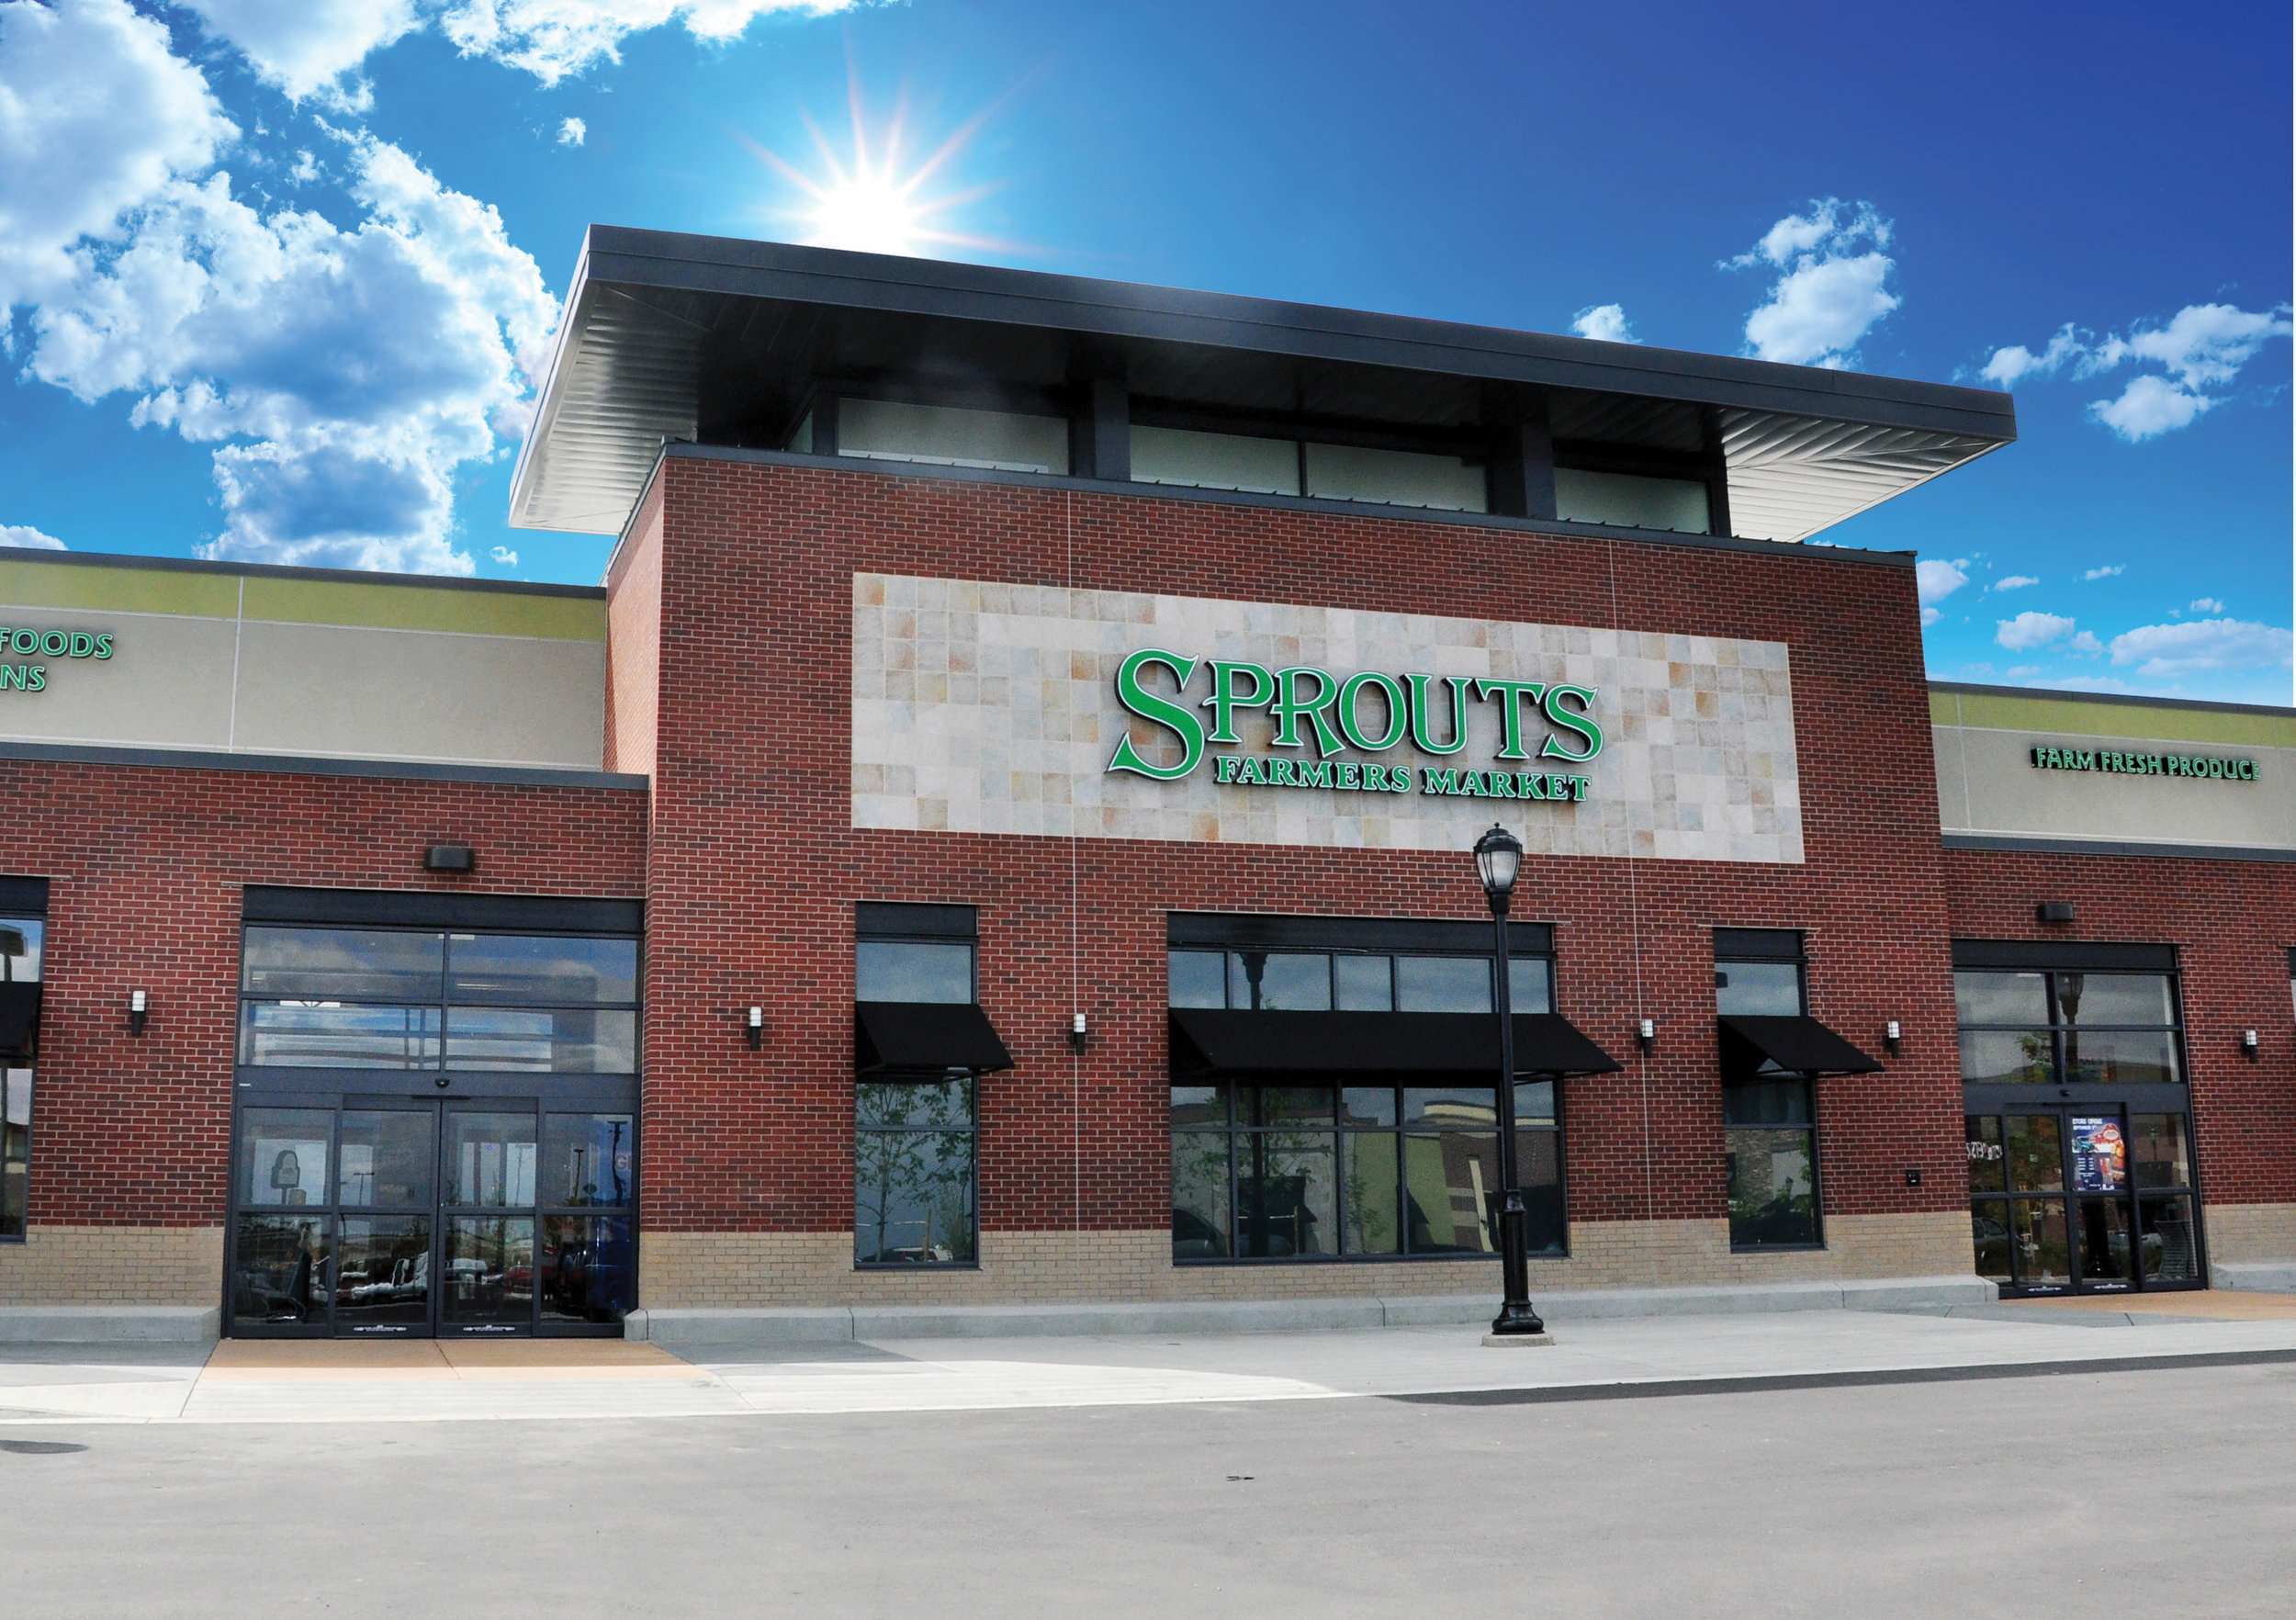 Your new favorite grocery store - Sprouts Farmers Market